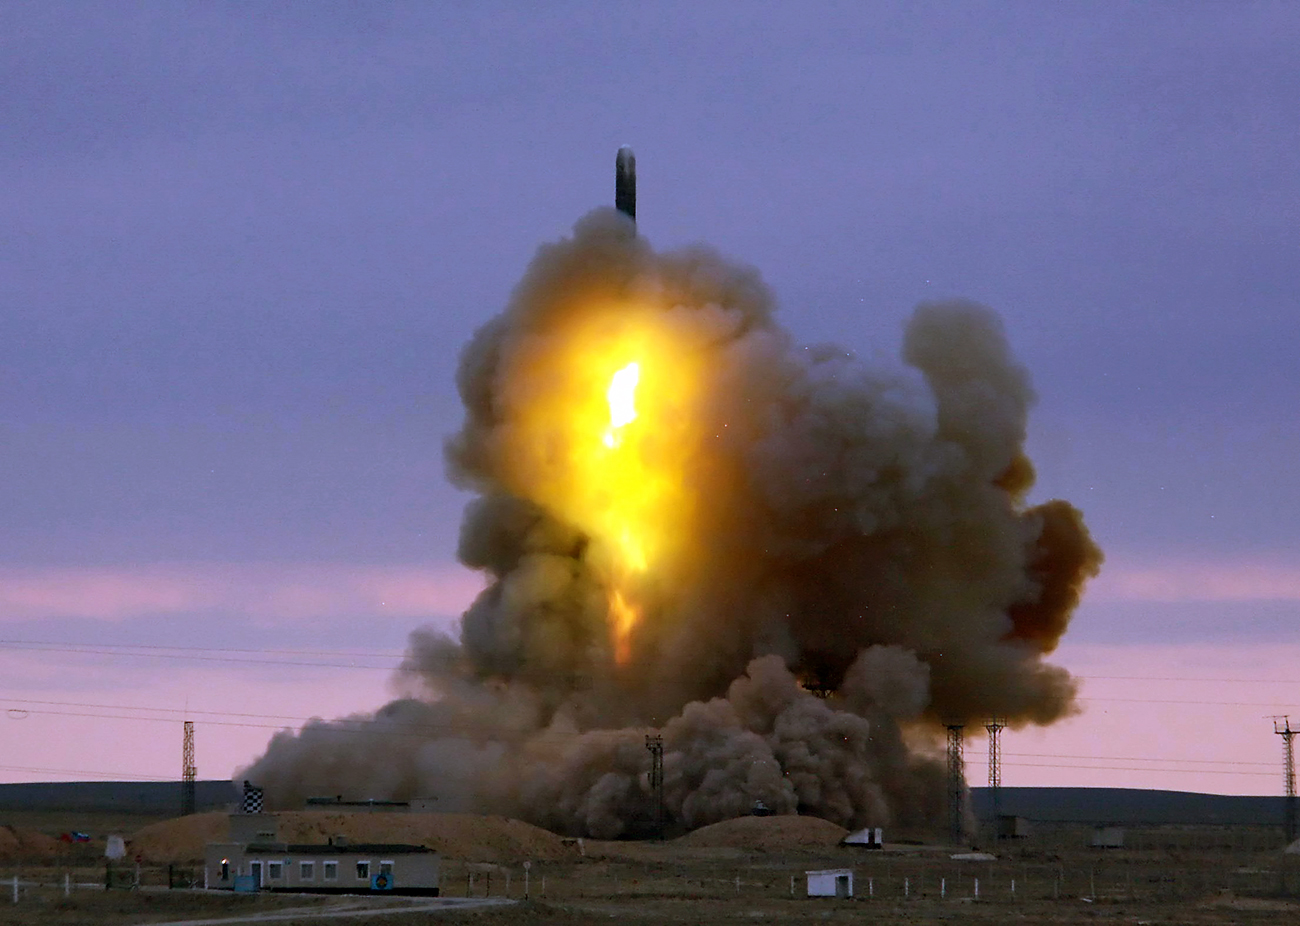 "The ""product 4202"" was tested on Oct. 25 at the Kura range in the Kamchatka Region. Pictured: The RS-18 Stiletto intercontinental ballistic missile has been launched from the Baikonur Cosmodrome having its target on the Kura training range."